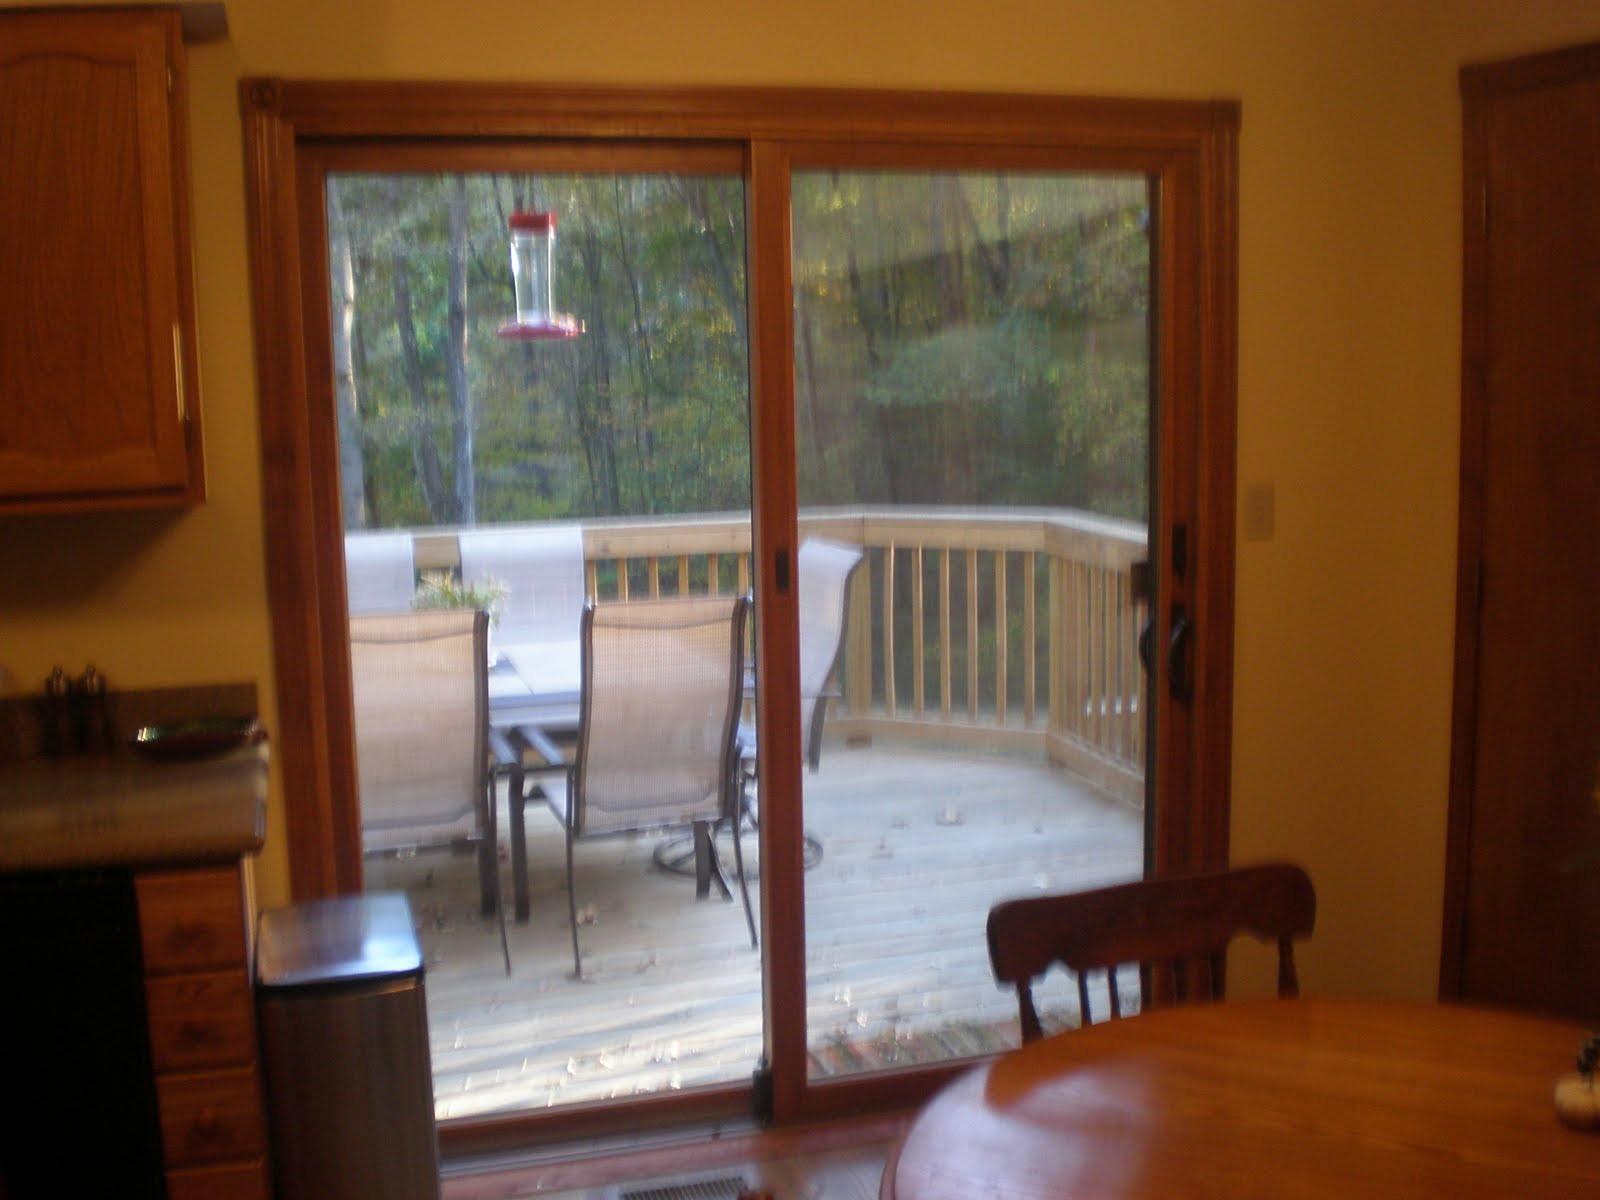 Dallas Beewindow Terratone Andersen Patio Doors And